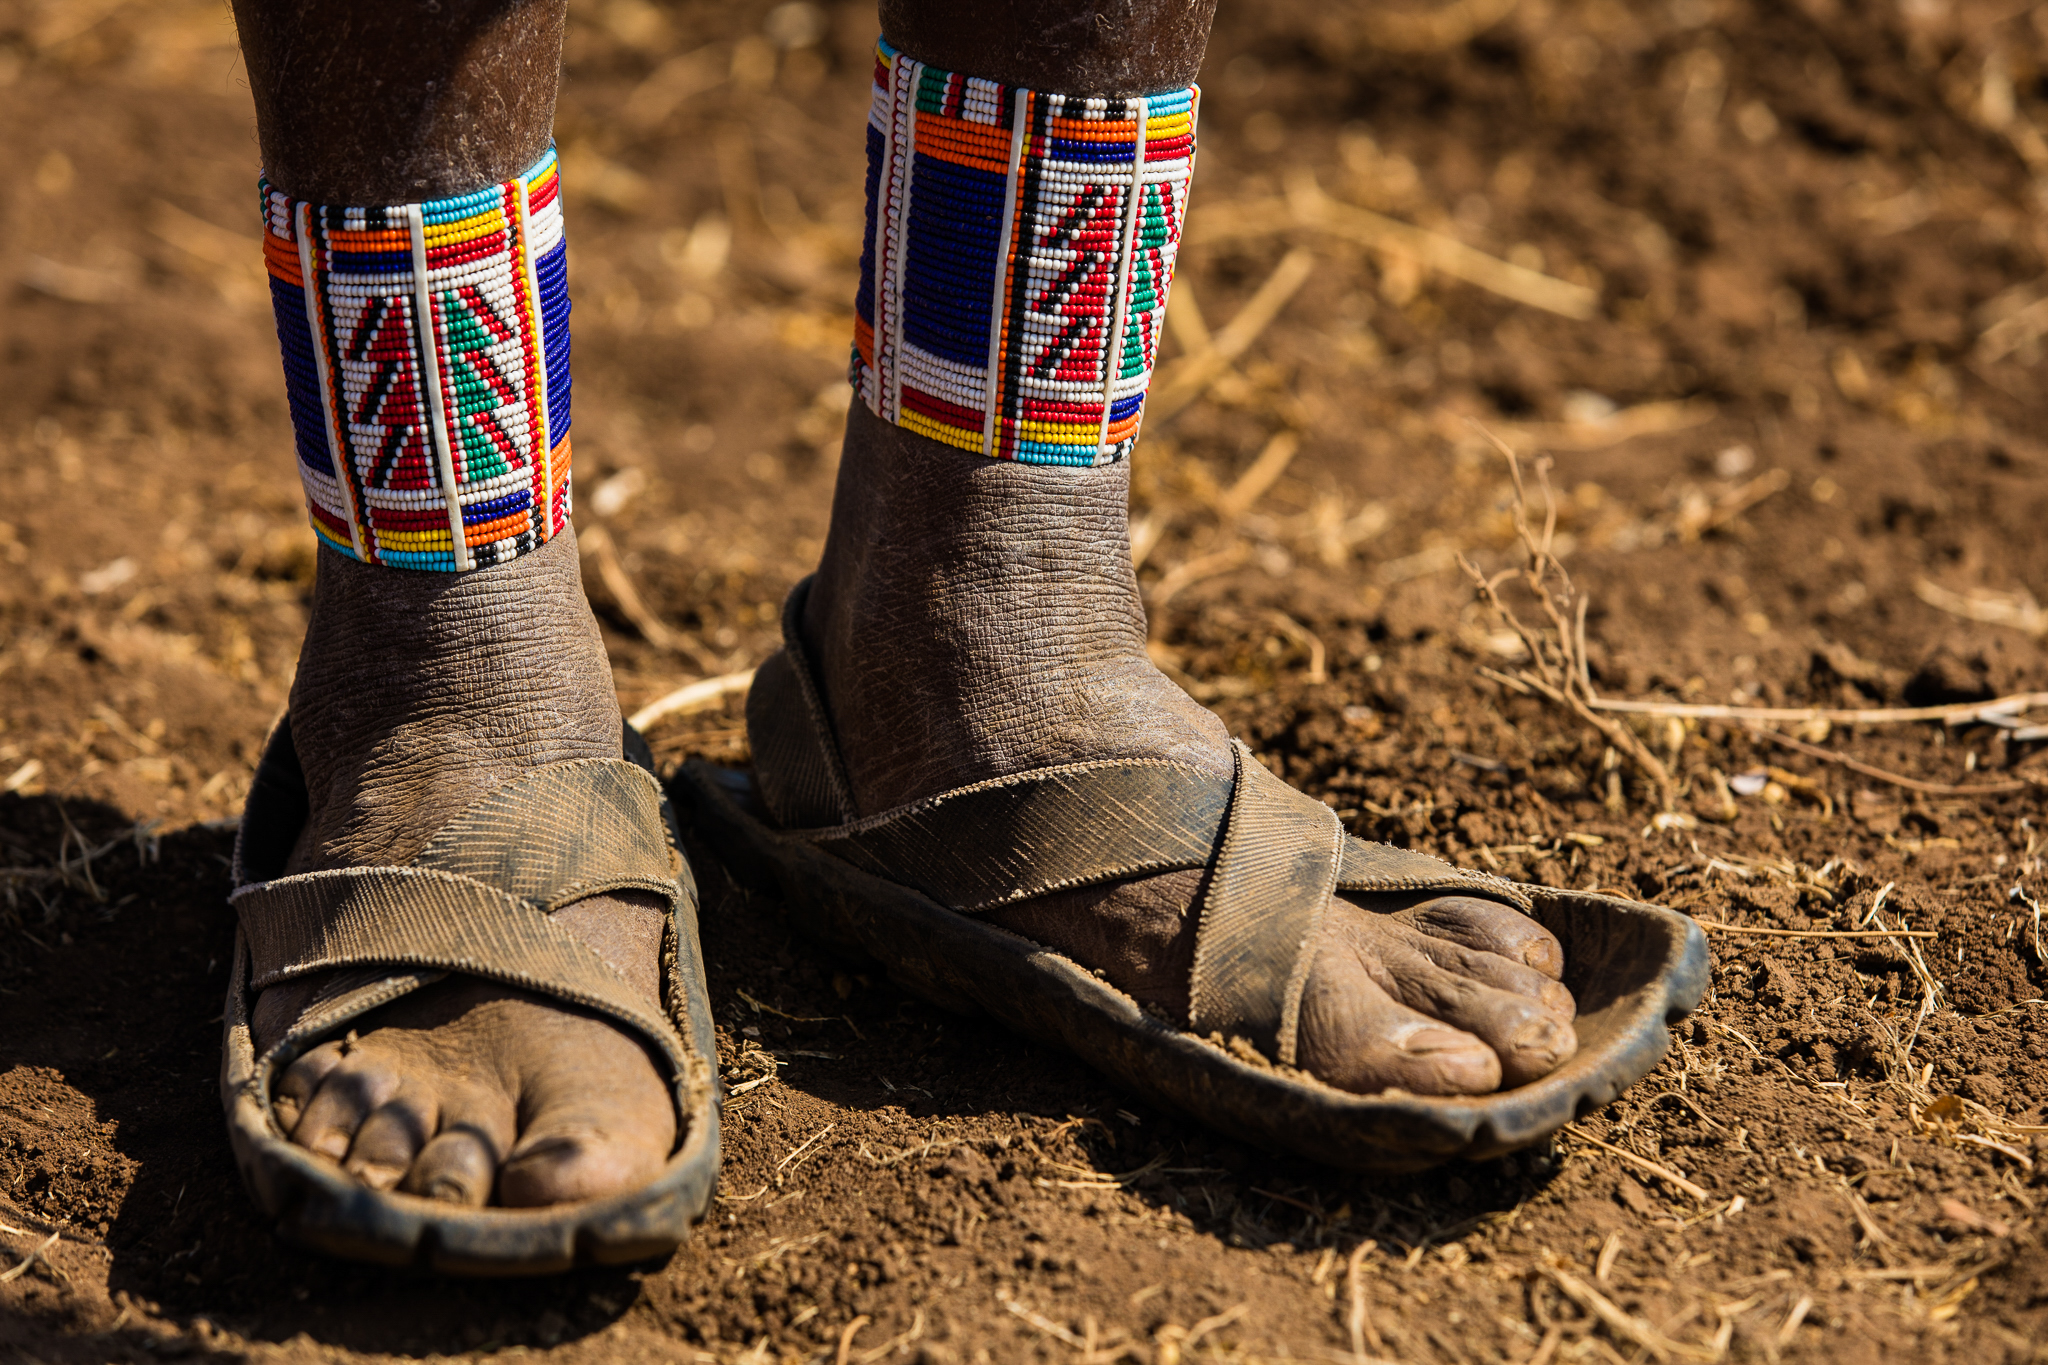 Nothing is wasted in Kenya, and old car tires have become a popular material for sandals.